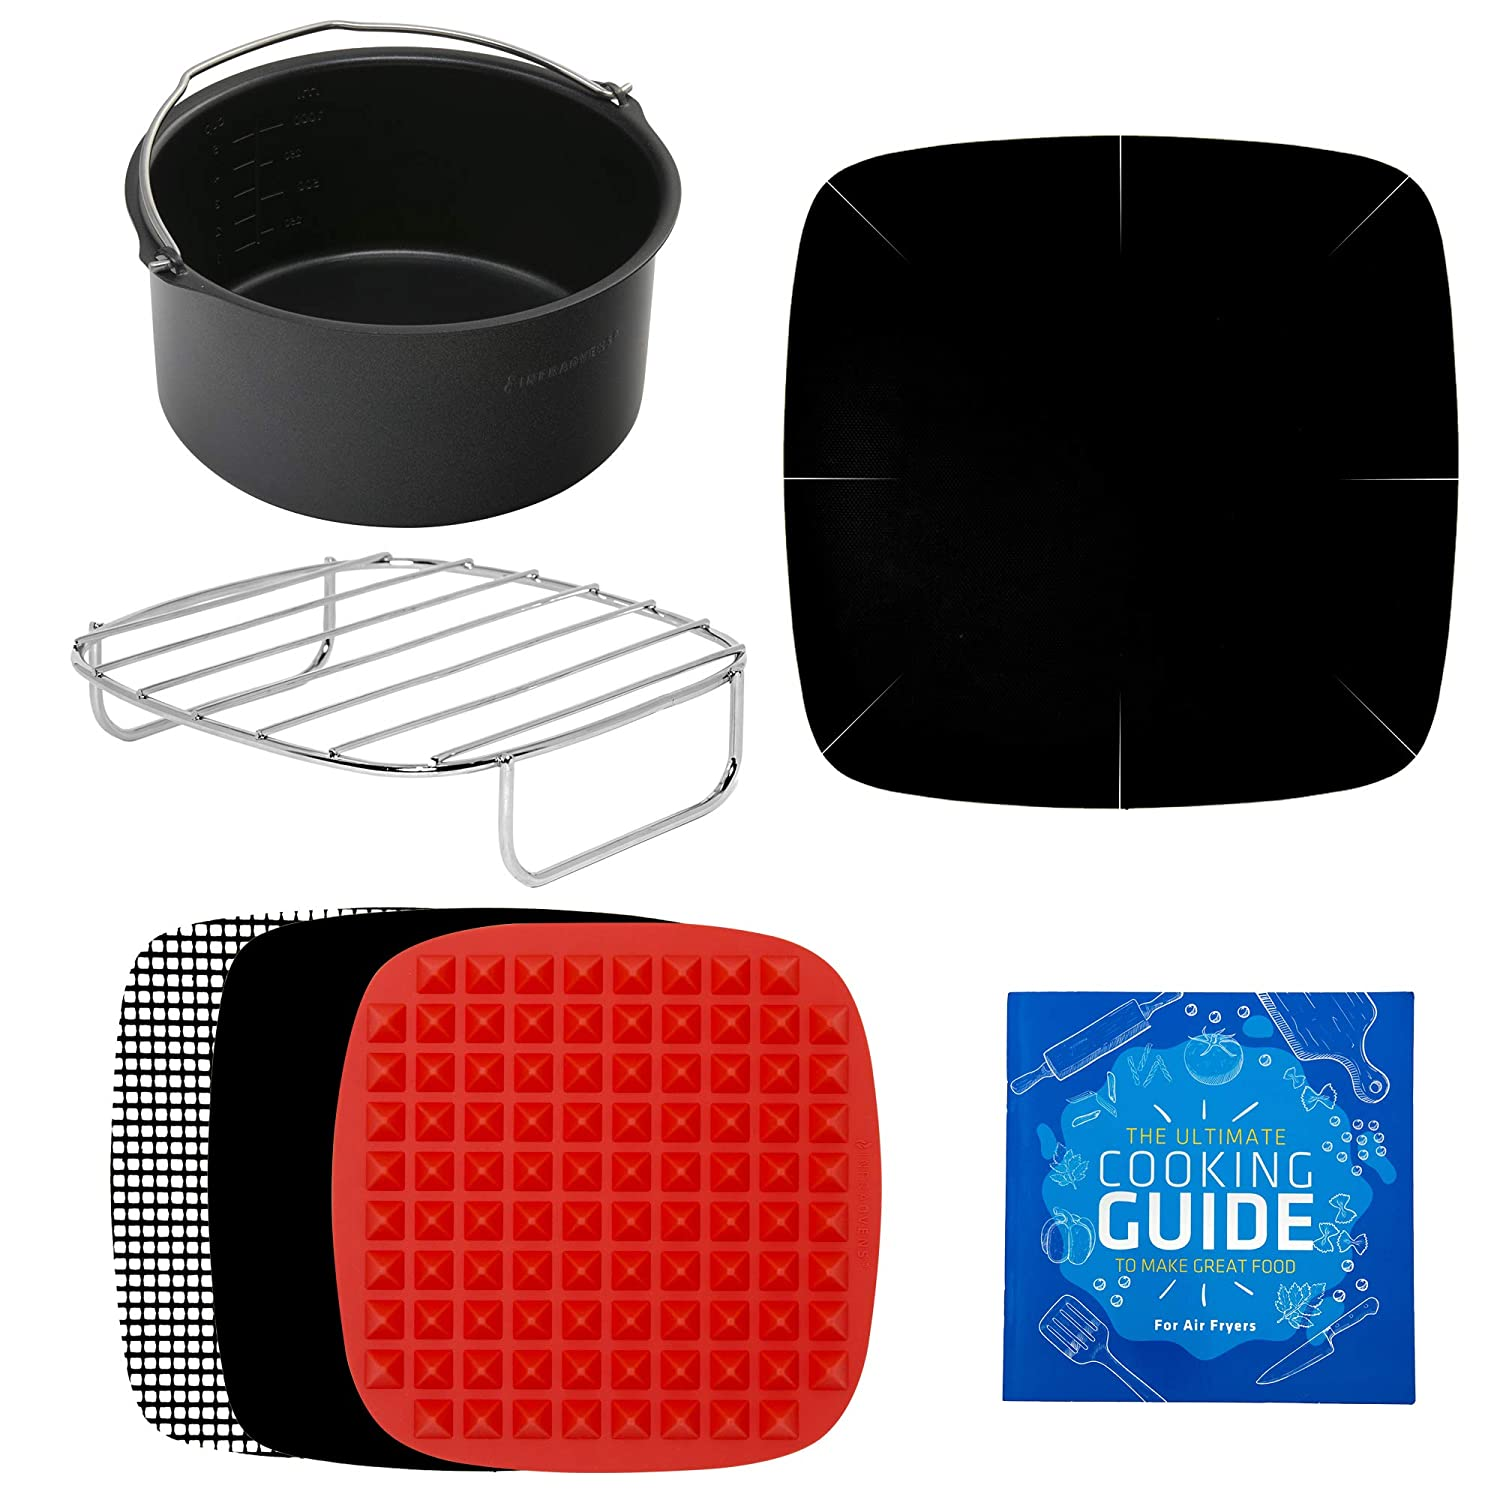 Air Fryer Accessories XL + Rack & Pan Compatible with Philips, NuWave Brio, Chefman, Gourmia, Emerald, Power Airfryer, Elite Platinum, Secura, Tidylife, COSORI, Krups, Black Decker +More by Infraovens